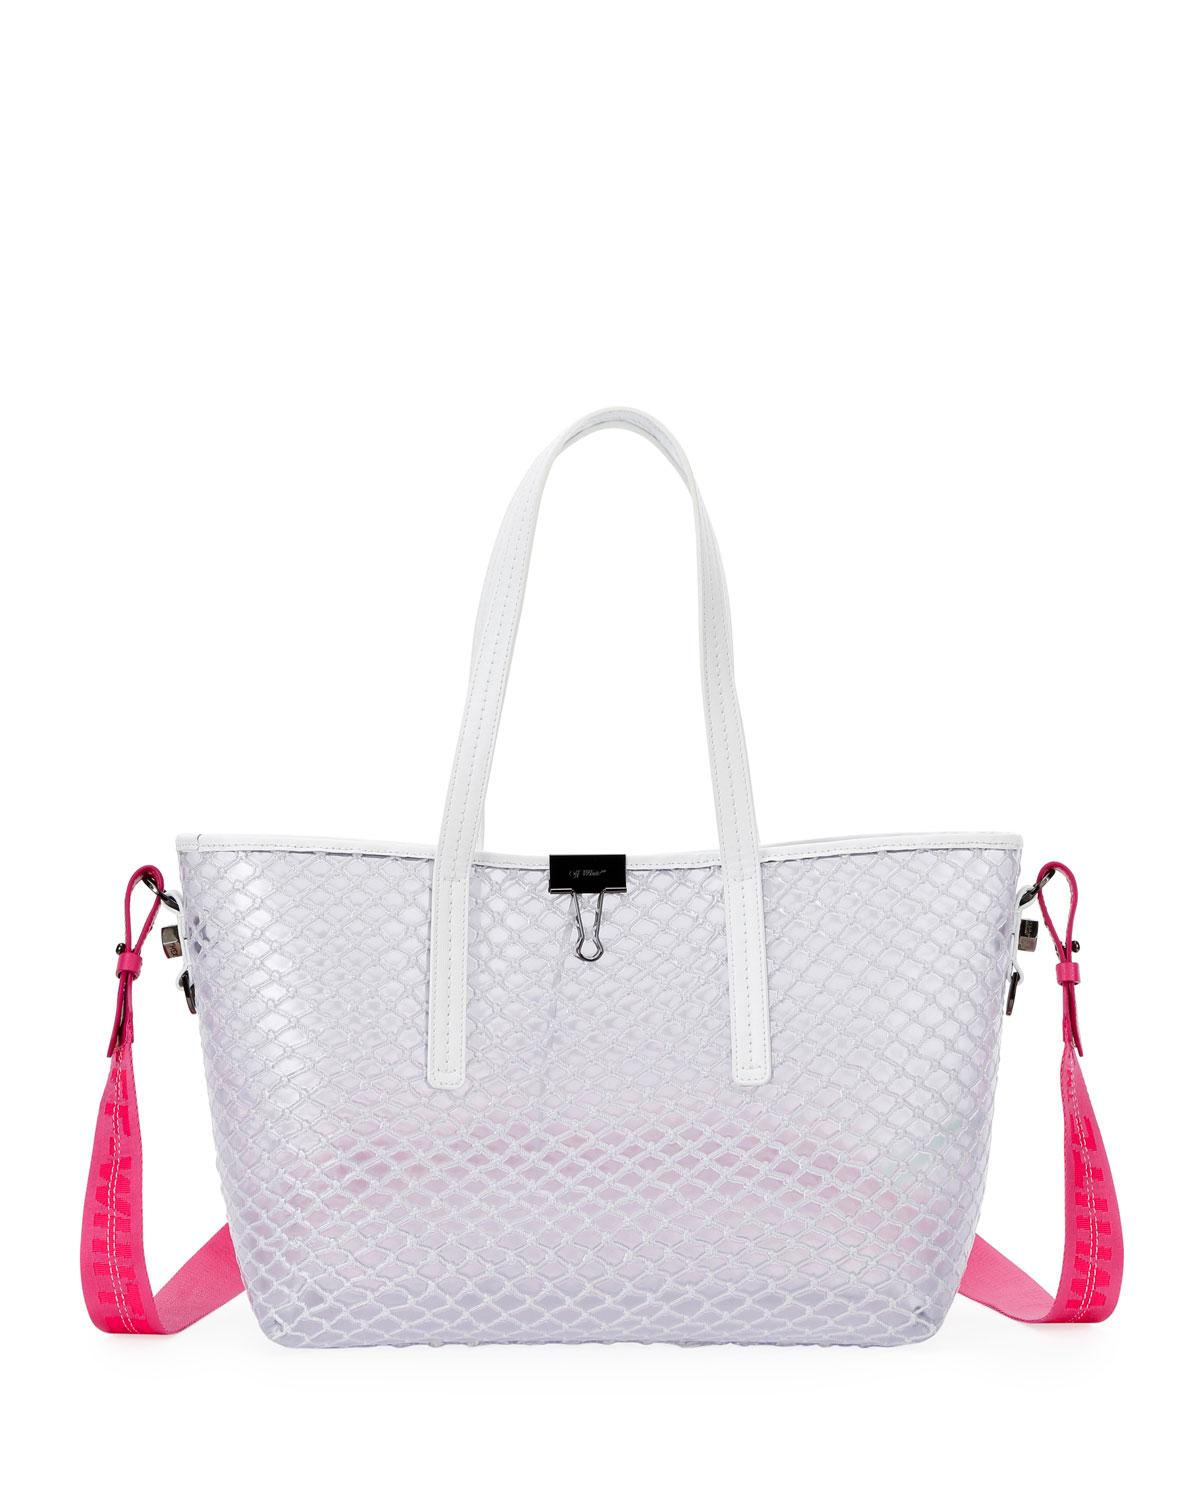 be2a100eed51 Lyst - Off-White c o Virgil Abloh Pvc Net Shopper Tote Bag in White